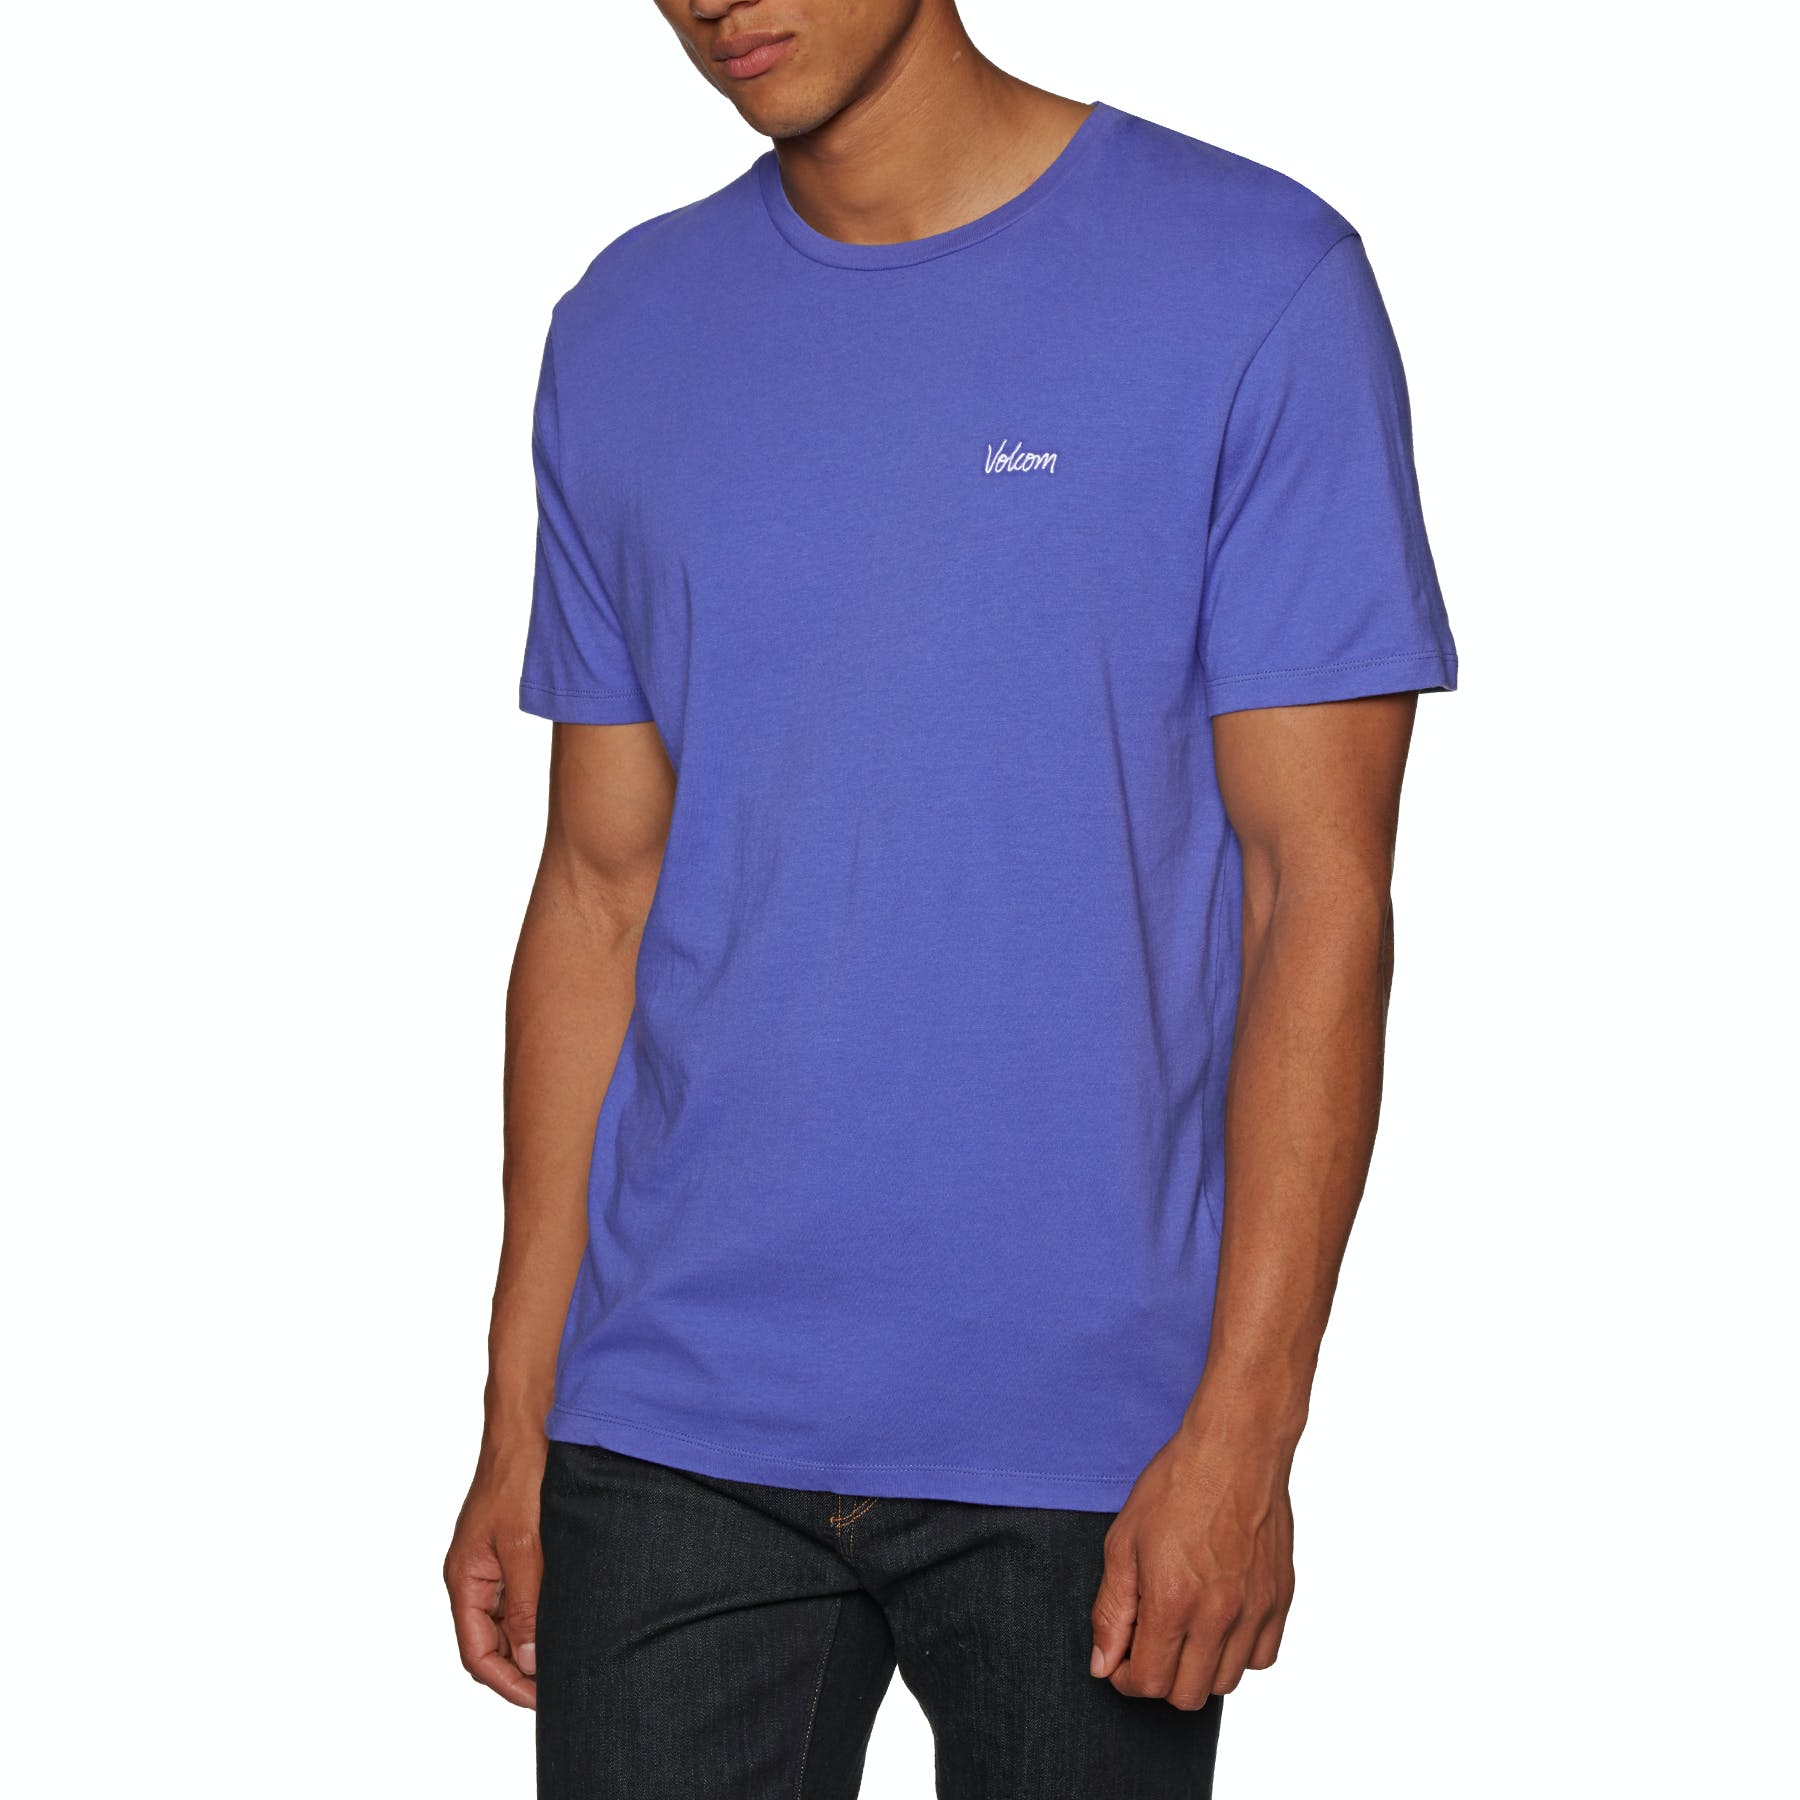 baskets pour pas cher 0946a 791c4 Volcom Impression Short Sleeve T-Shirt - Free Delivery options on All  Orders from Surfdome UK